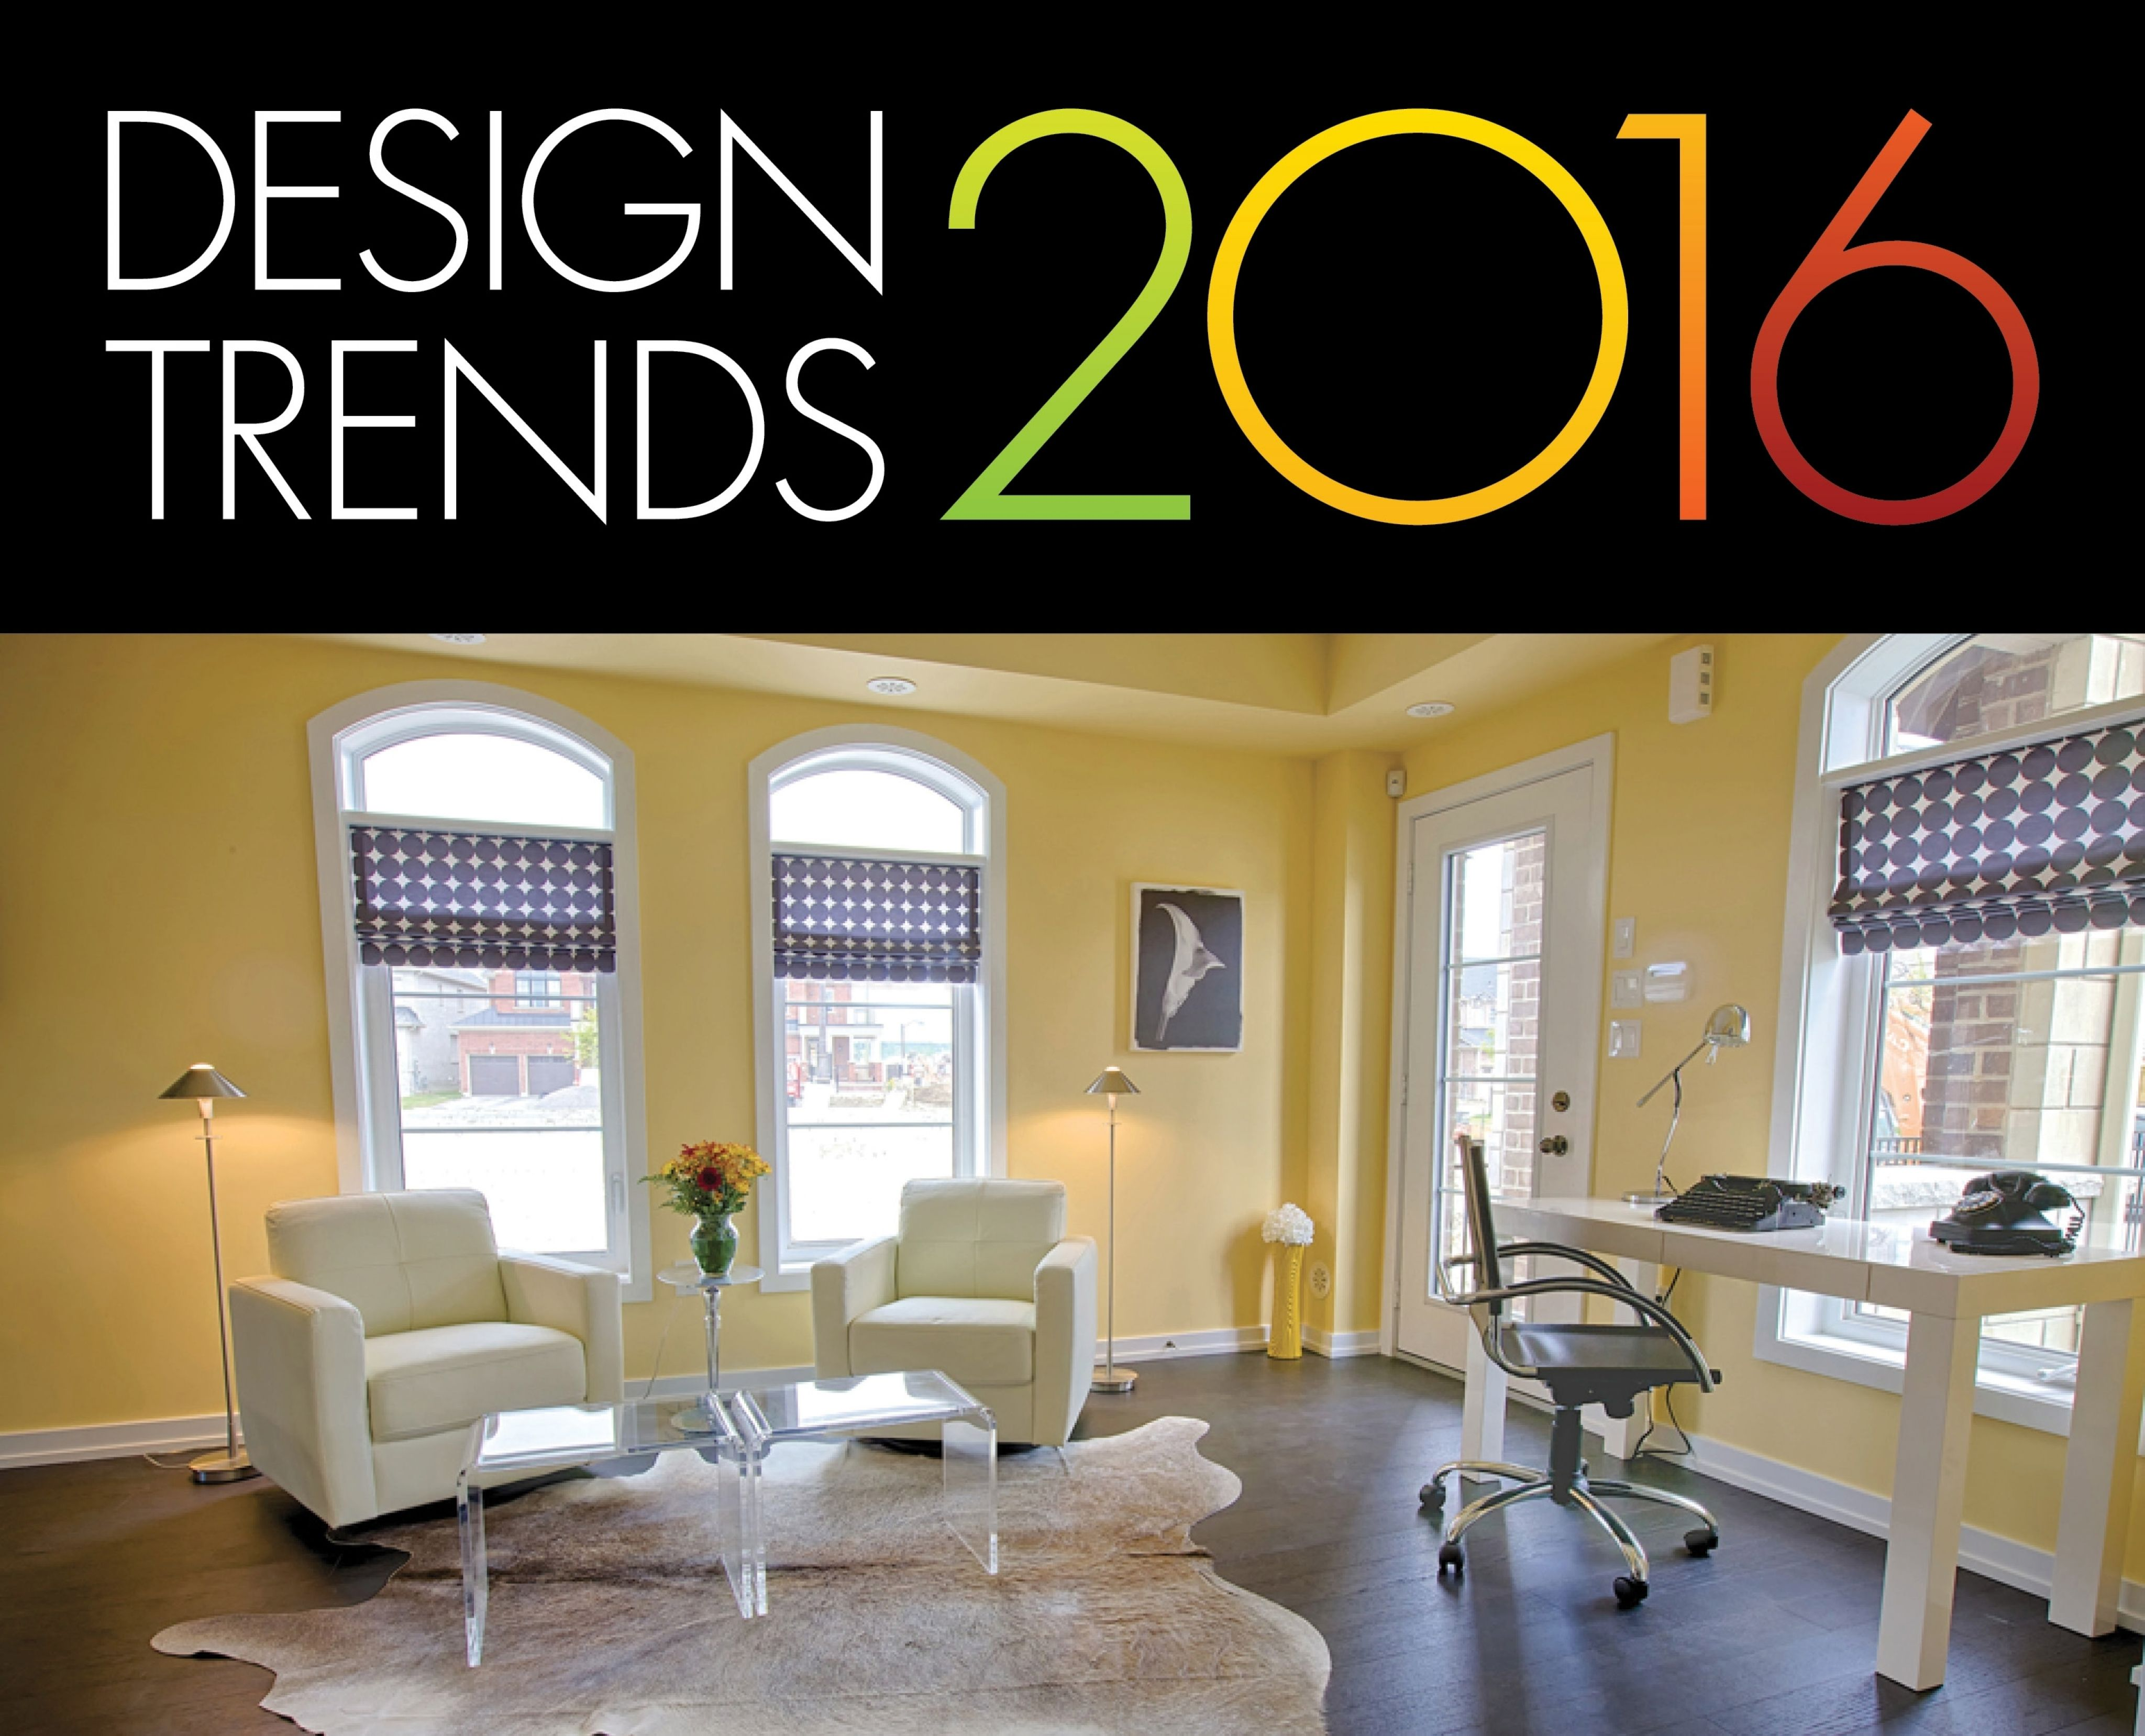 Decorating Trends   Best Interior Paint Brand Check More At  Http://mindlessapparel.